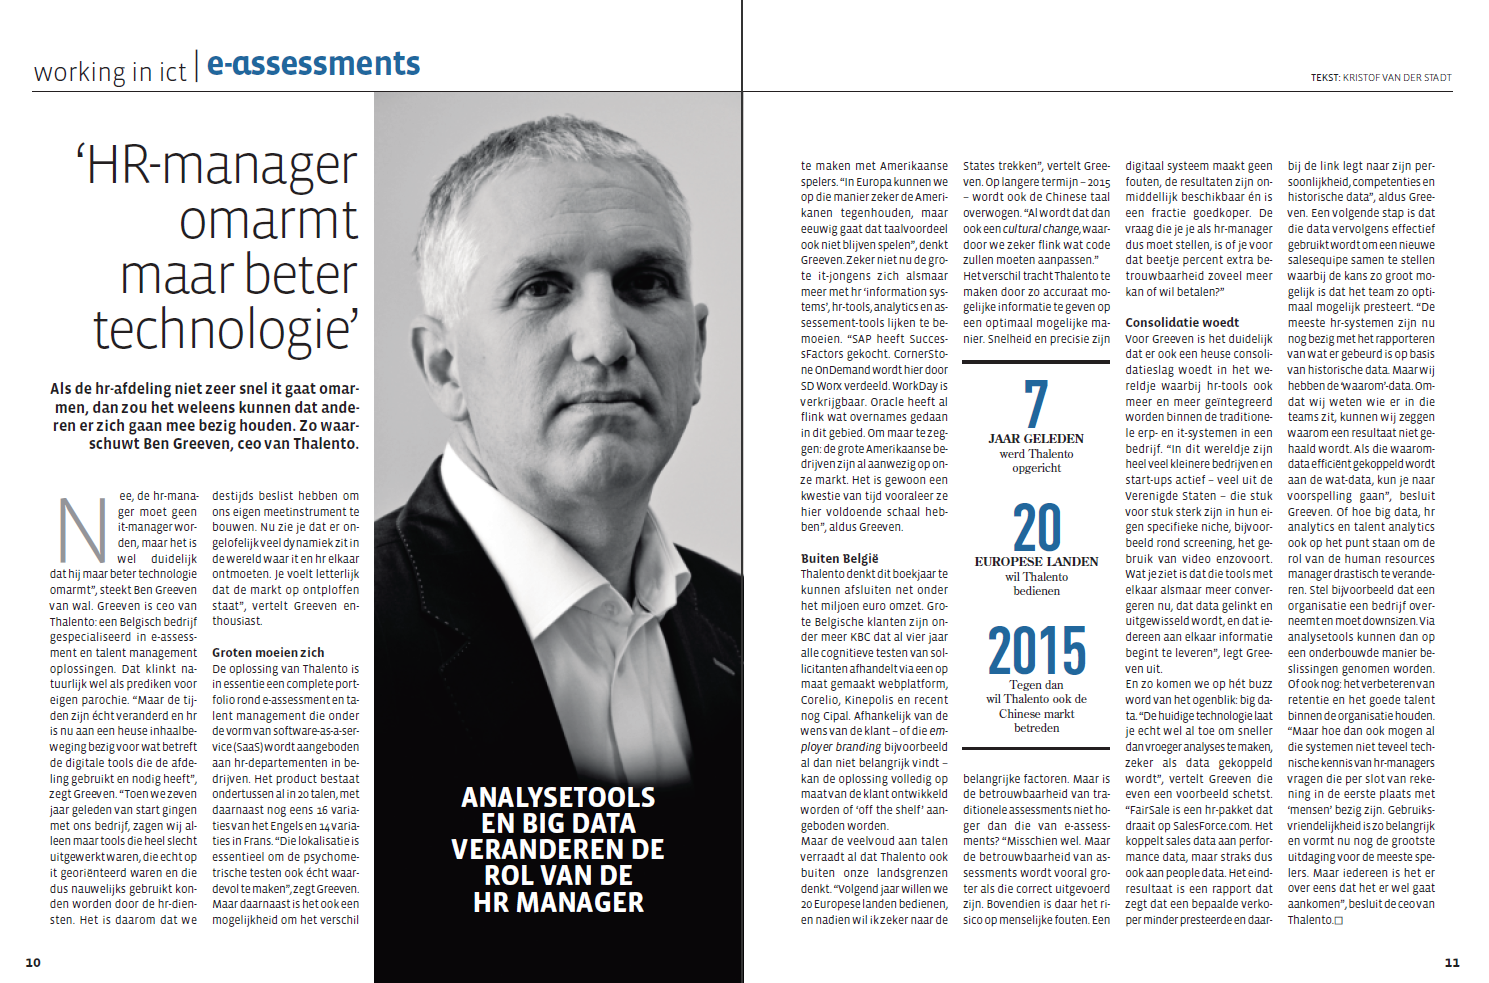 Artikel Thalento - Ben Greeven - Datanews - Working in ICT Guide 22-11-2013 NL.png